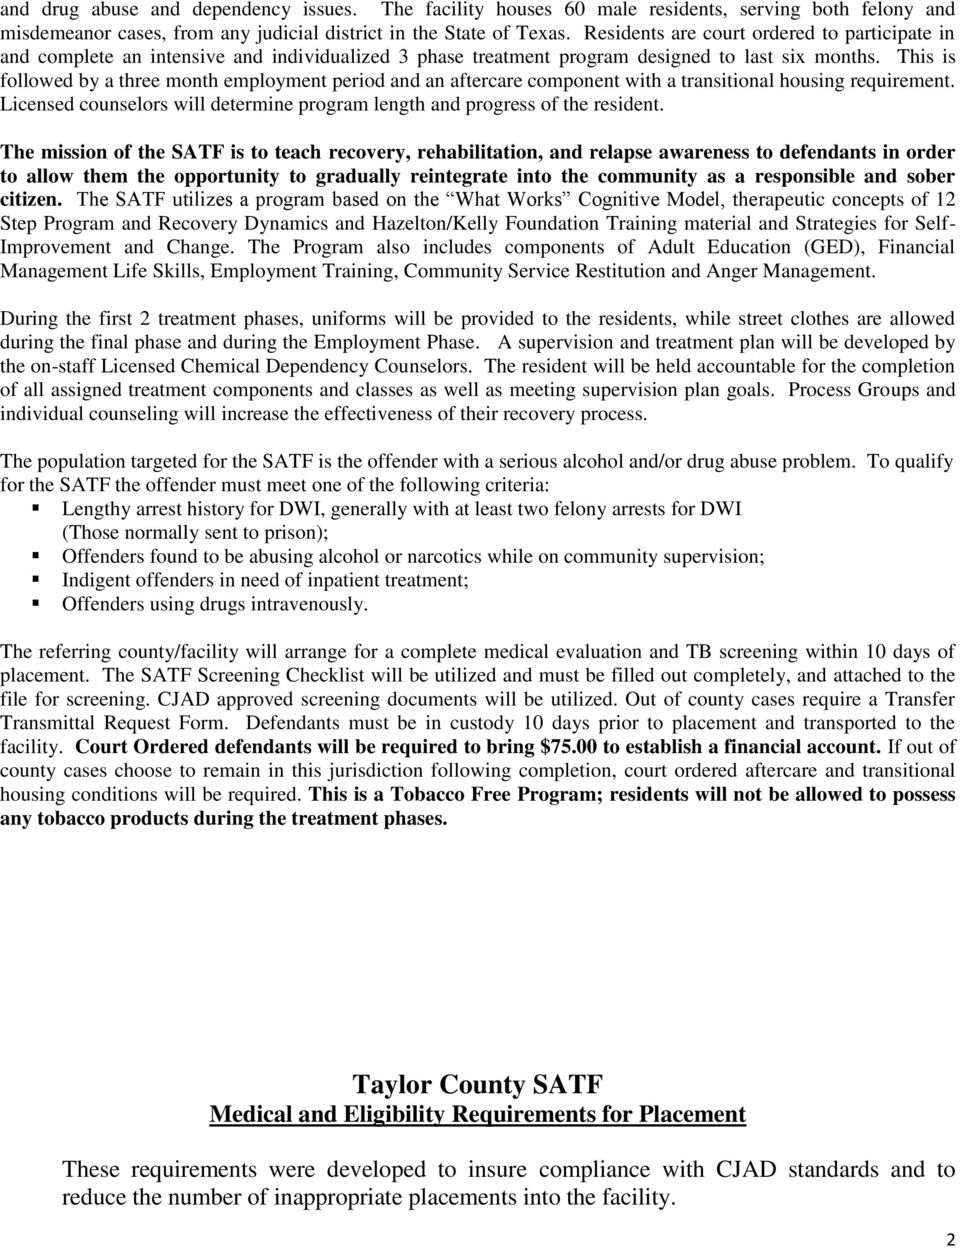 TAYLOR COUNTY CSCD SUBSTANCE ABUSE TREATMENT FACILITY - PDF